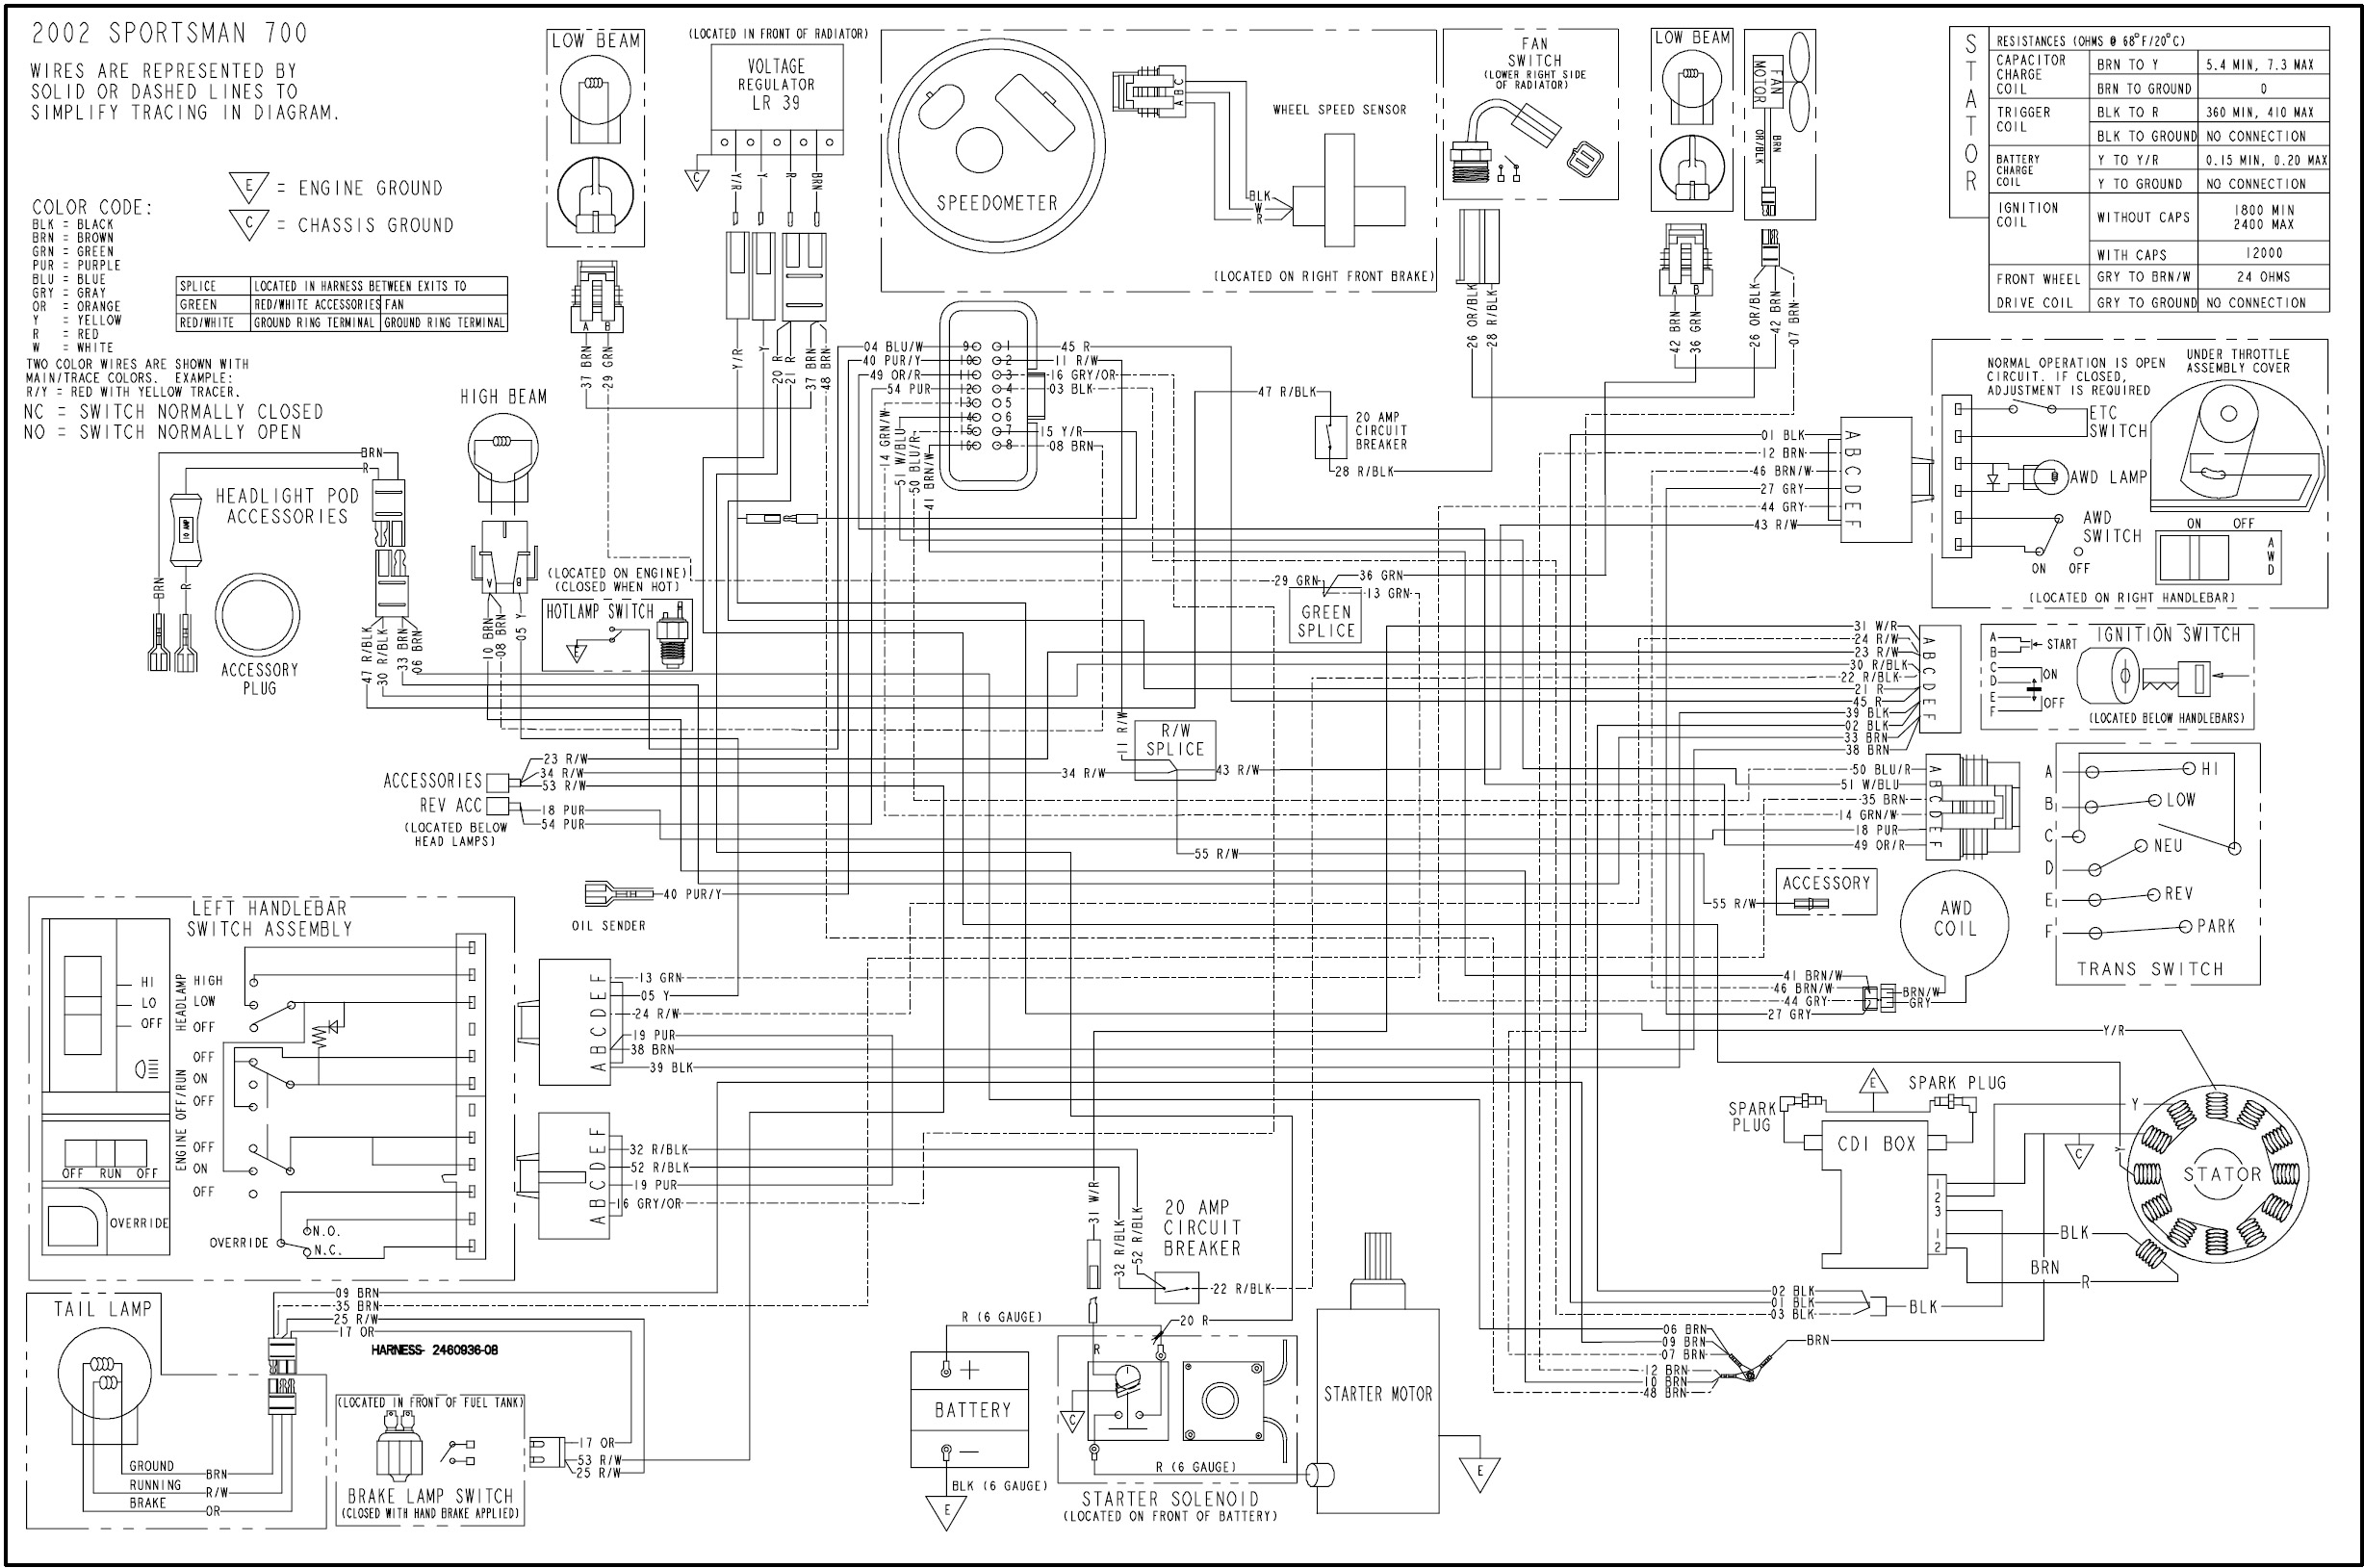 2003 Polaris Sportsman 600 Wiring Schematic. cdi wiring question polaris  atv forum. wiringsample. 2004 polaris sportsman 600 twin wiring diagram  wiring. 2001 polaris sportsman 500 wiring diagram pdf wiring. polaris  sportsman 5002002-acura-tl-radio.info